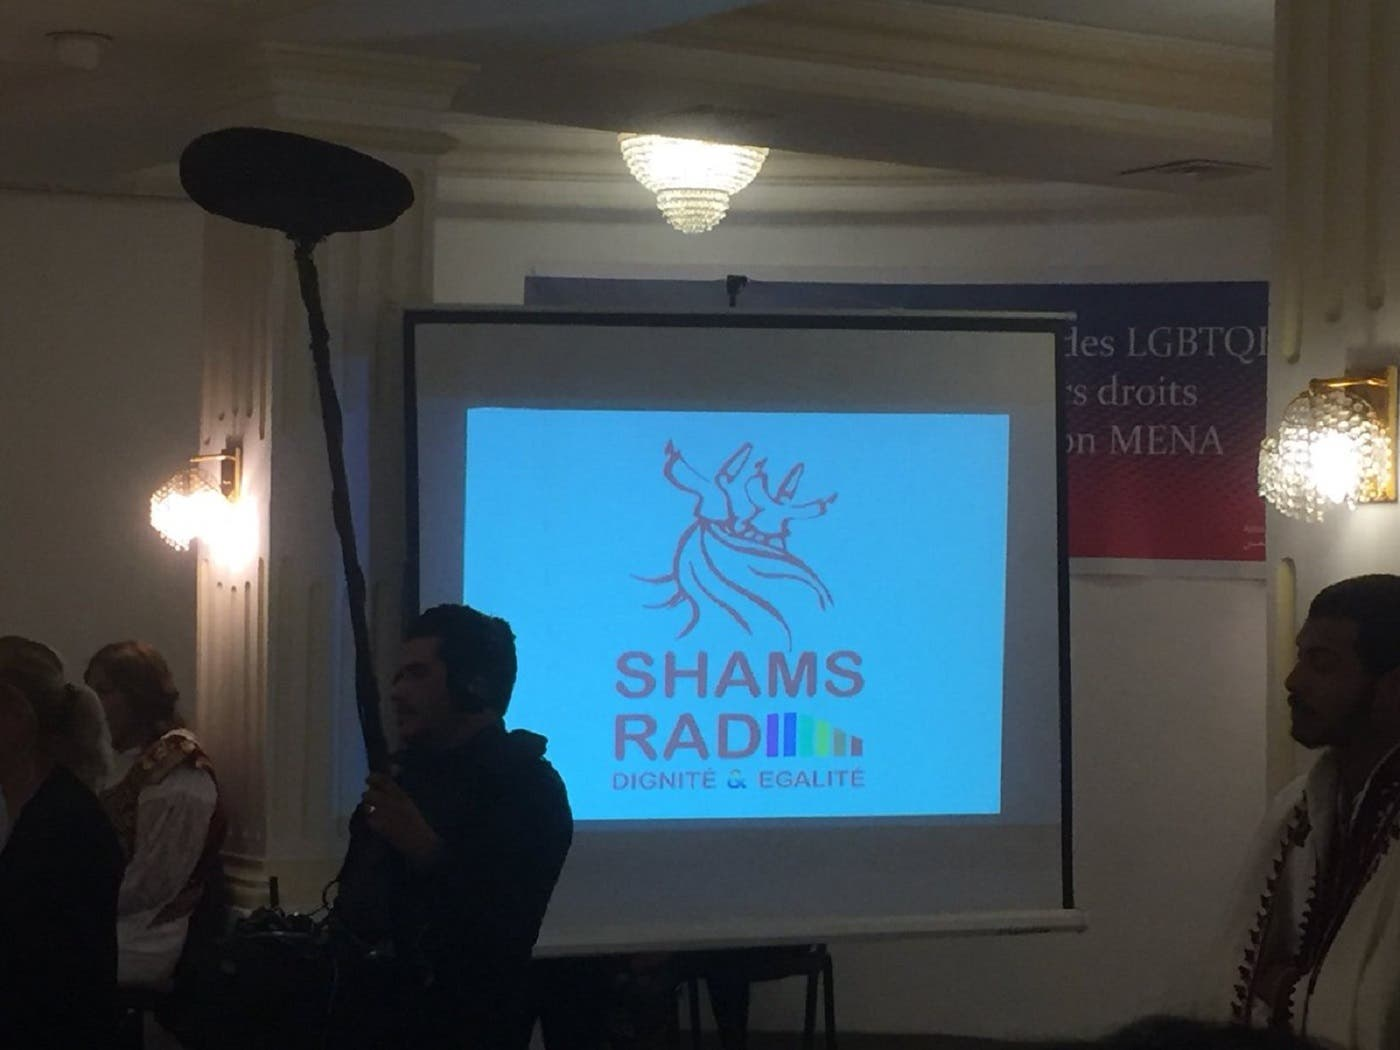 Radio Shams will dedicate most of its time to defend sexual minorities. (Supplied)